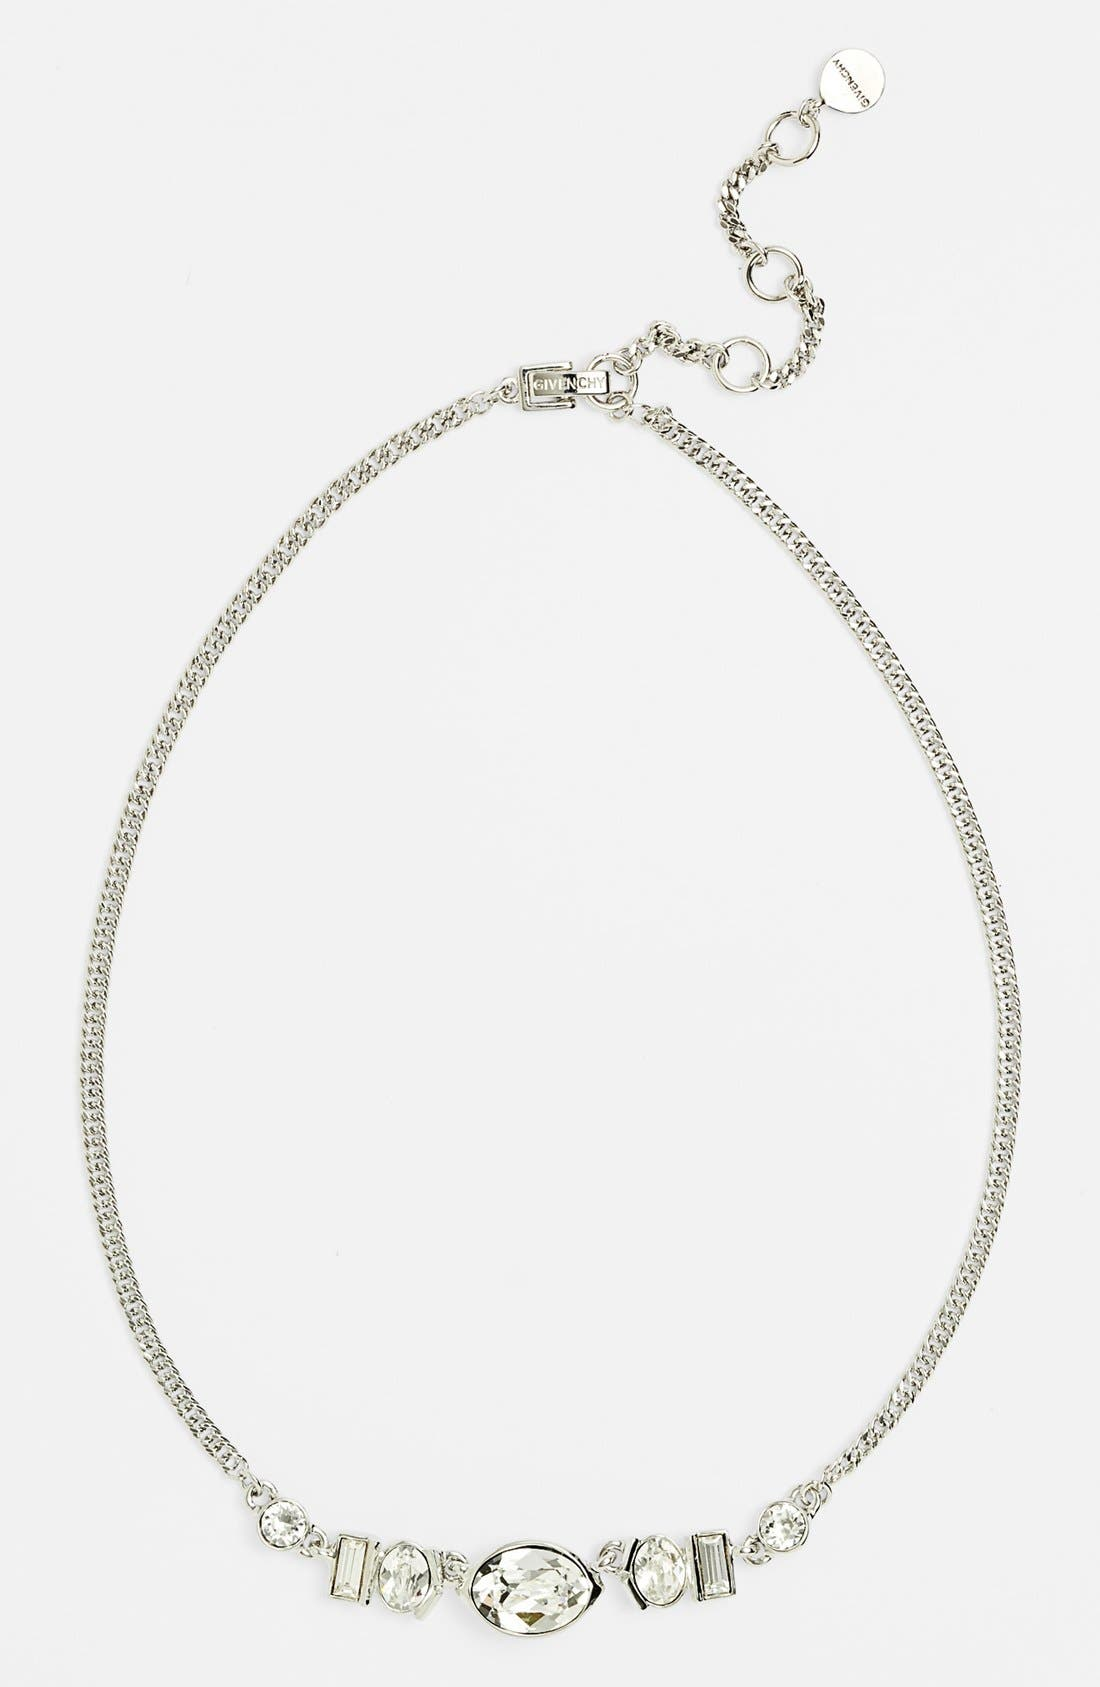 Alternate Image 1 Selected - Givenchy Frontal Necklace (Nordstrom Exclusive)